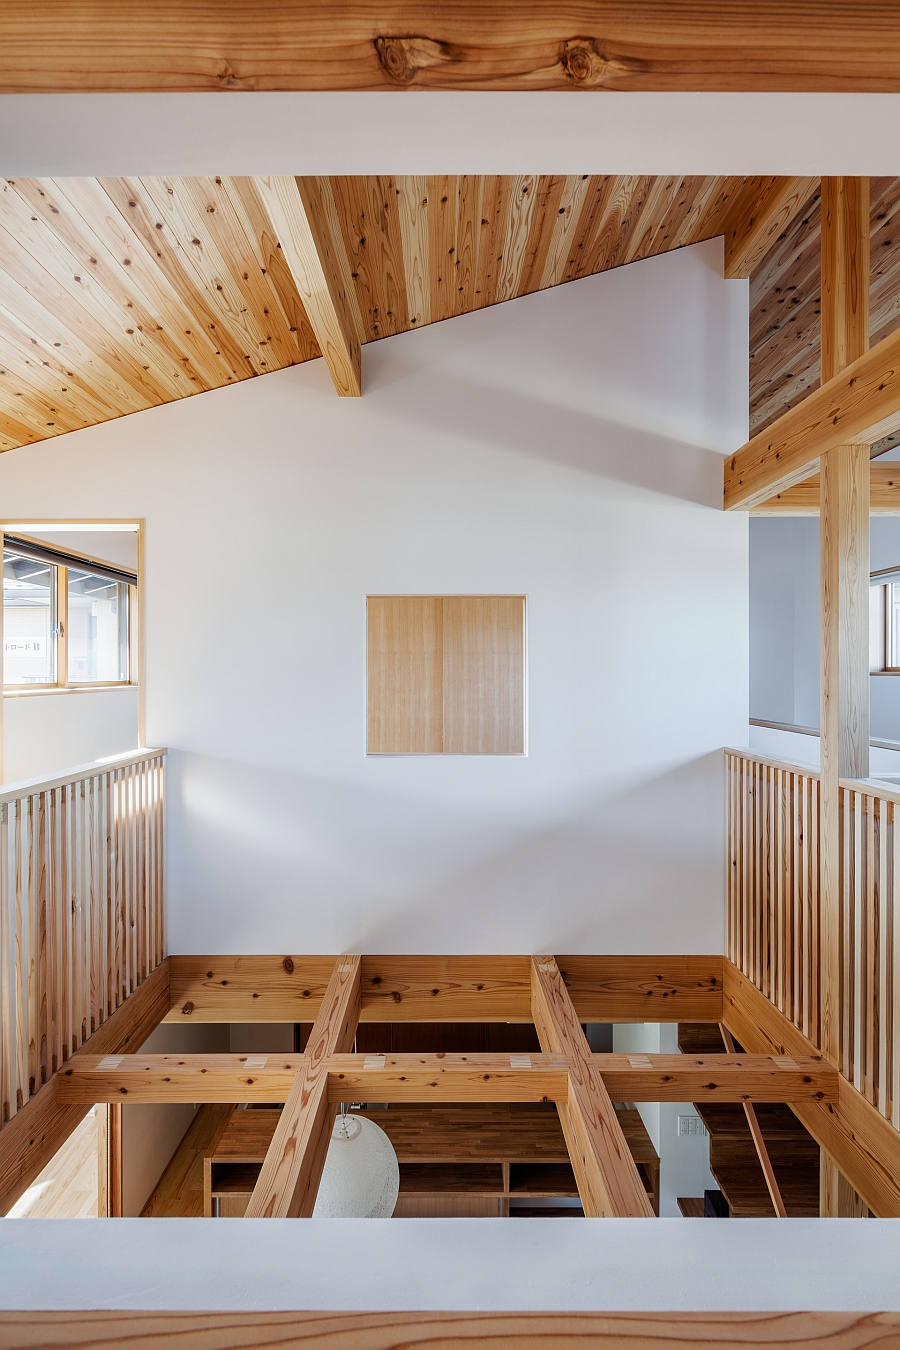 Ventilation to the second floor comes from the wooden grid below